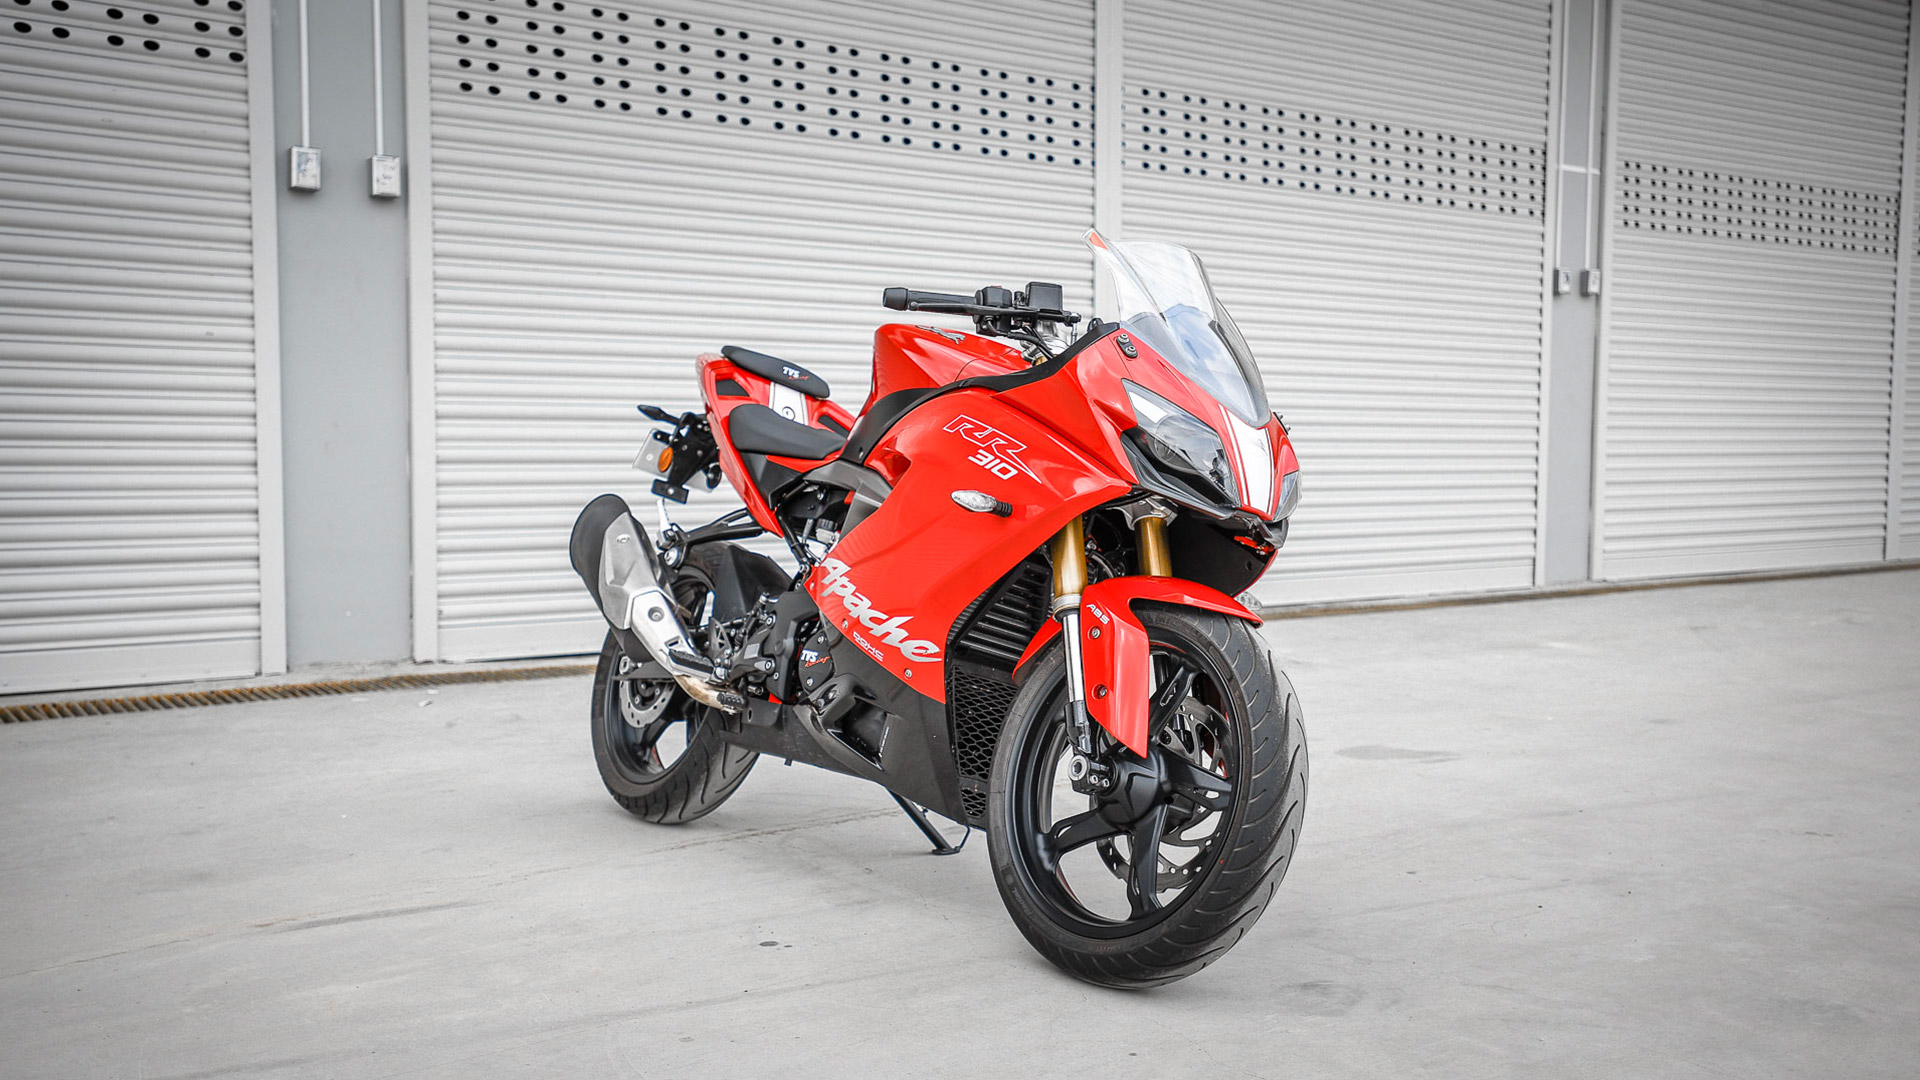 tvs apache rr 310 2018 price mileage reviews specification